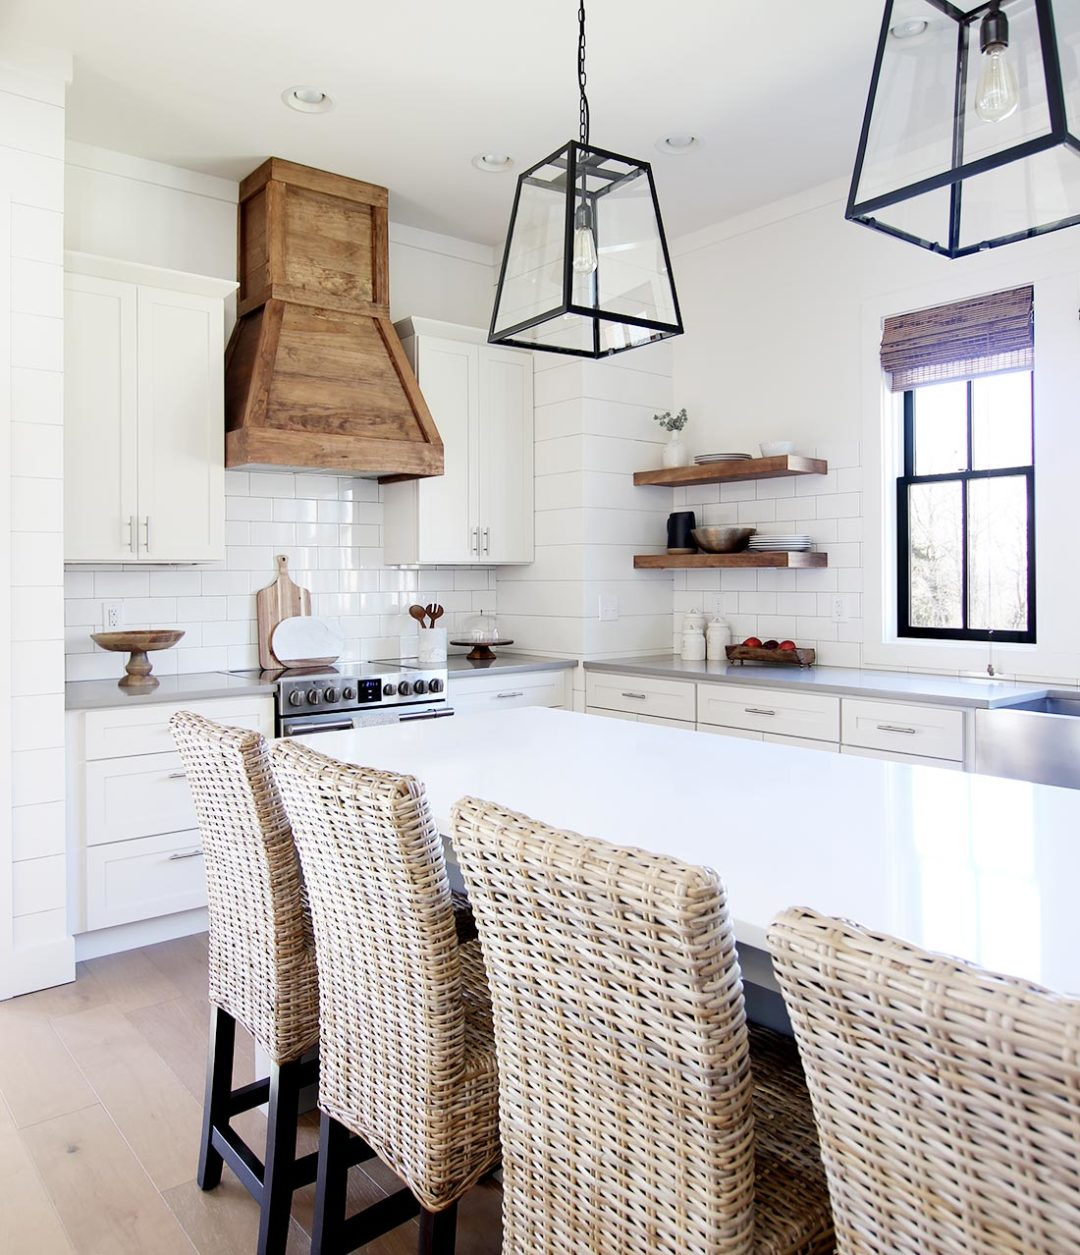 How To Build A Farmhouse Wood Range Hood Plank And Pillow